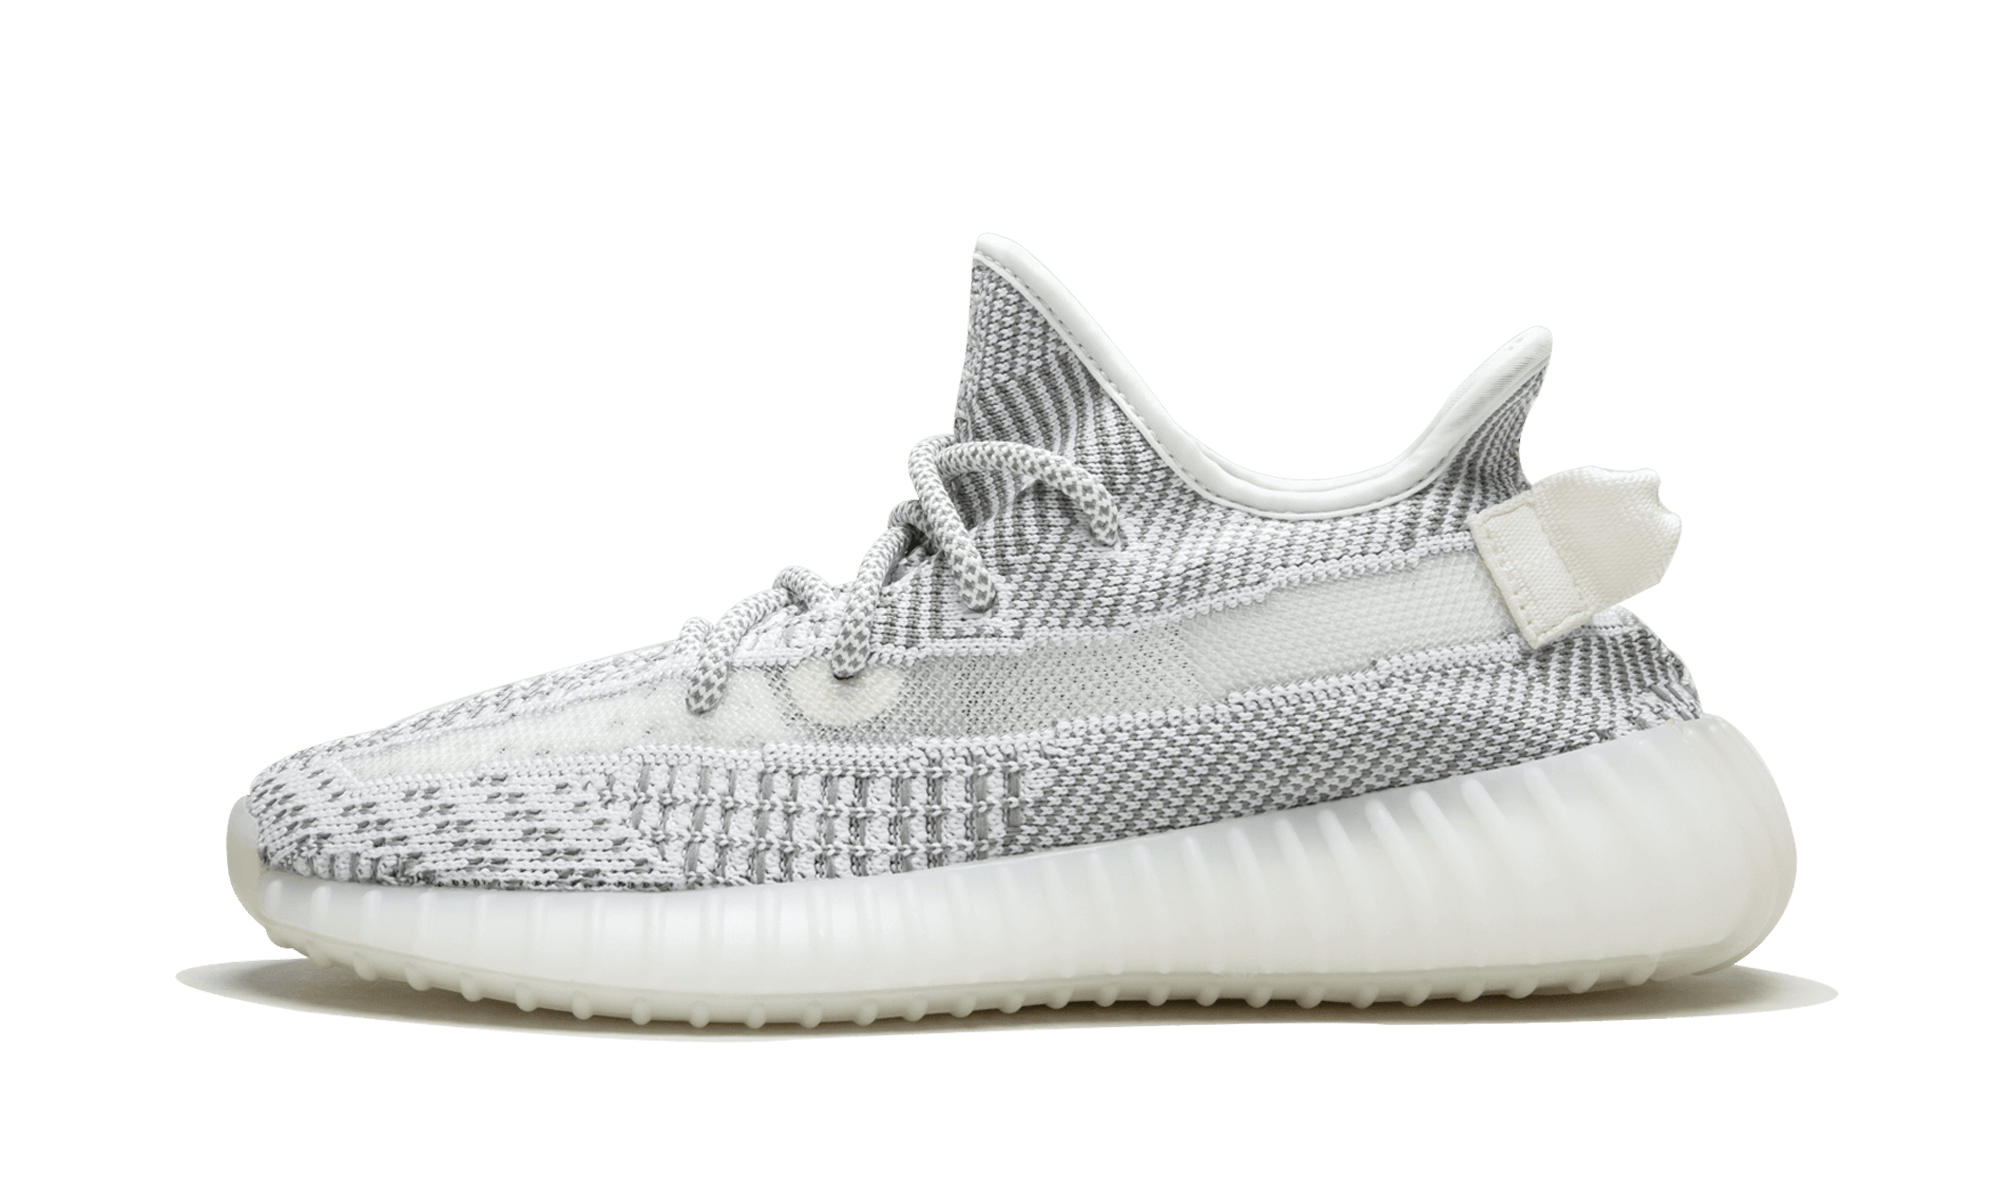 931ef78464c8d Adidas Yeezy Boost 350 V2 Static Static  Static - Non-reflective  in ...